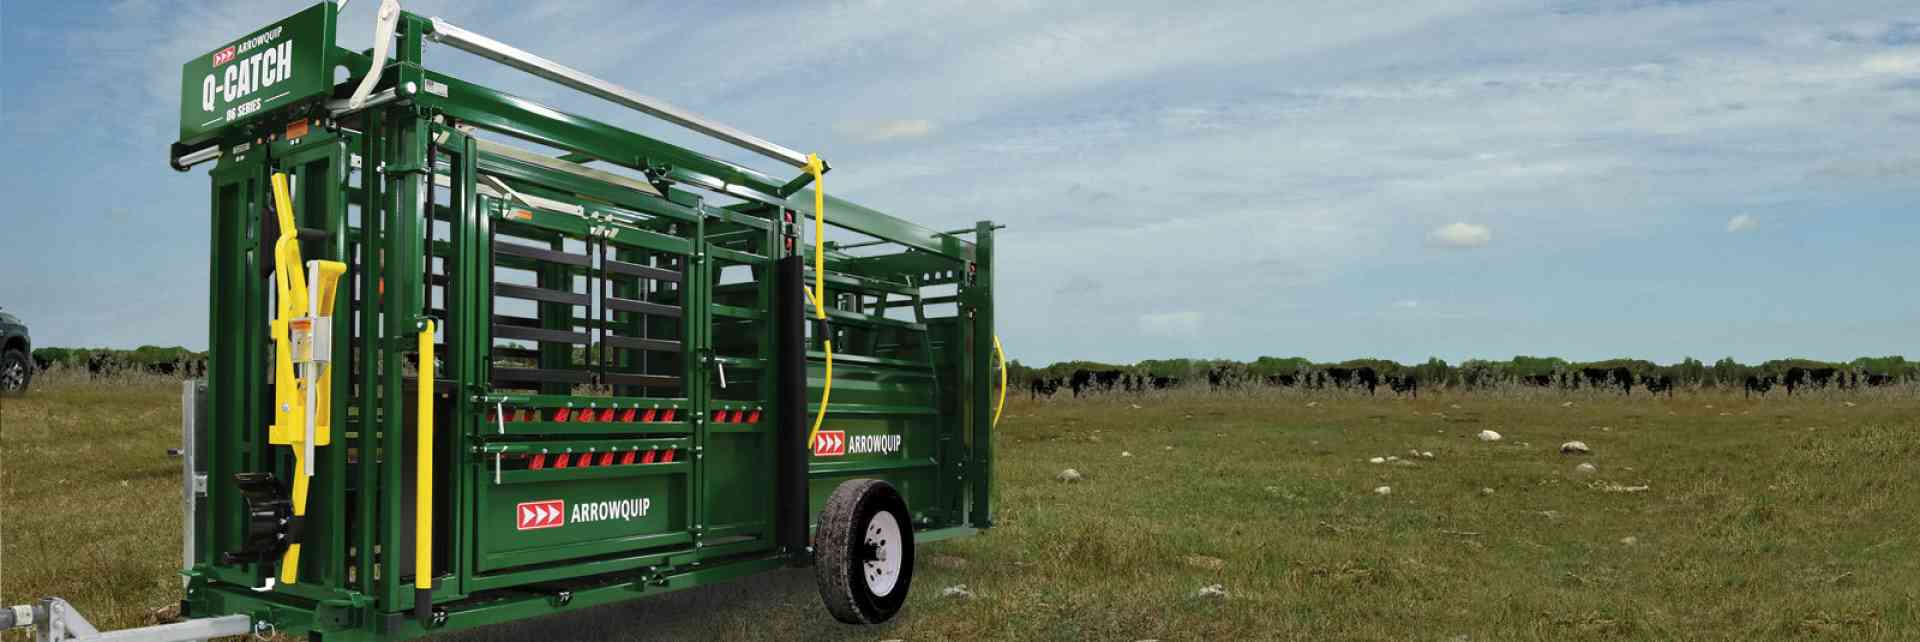 Portable Q-Catch 86 Series Cattle Chute & Cattle Alley | Arrowquip Cattle Equipment